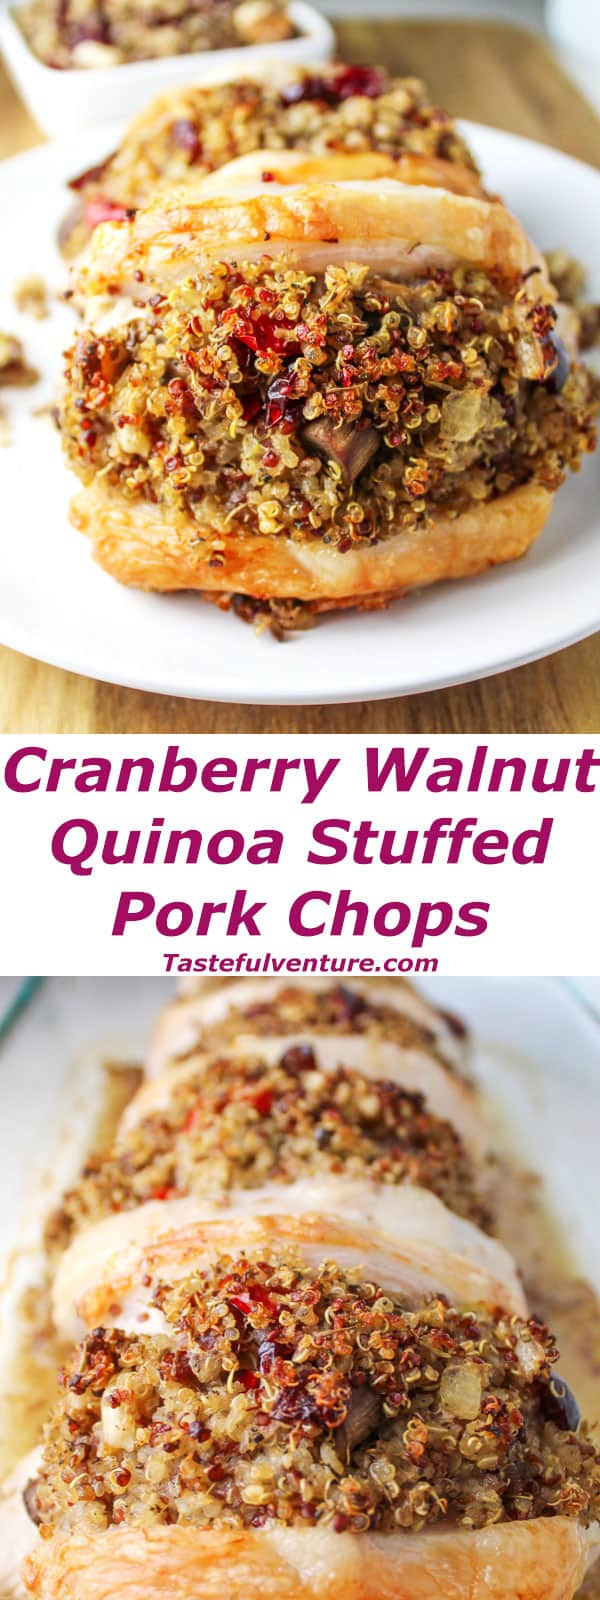 Recipe stuffed pork chops cranberries